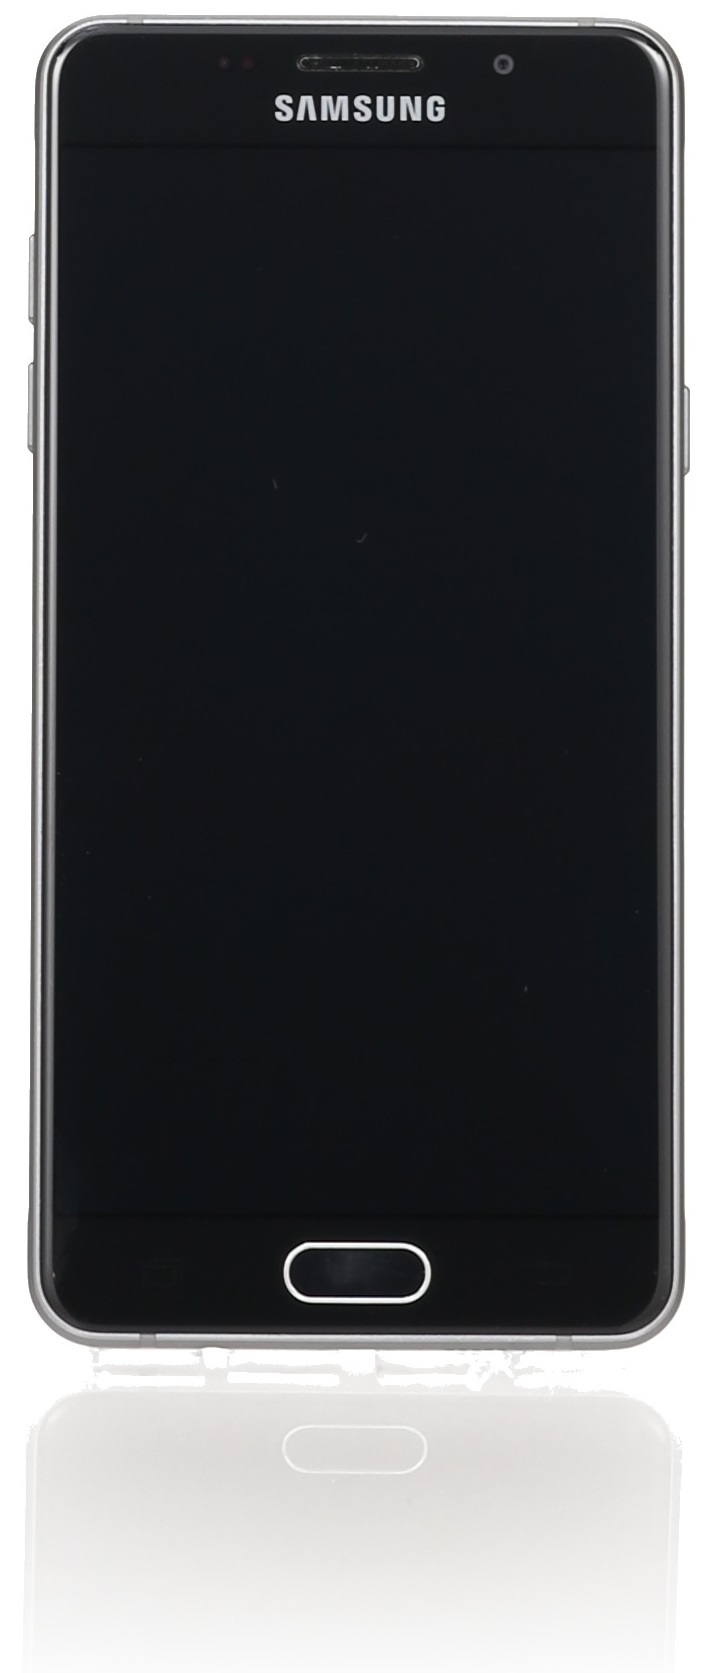 Samsung A510F Galaxy A5 (2016) 16GB black